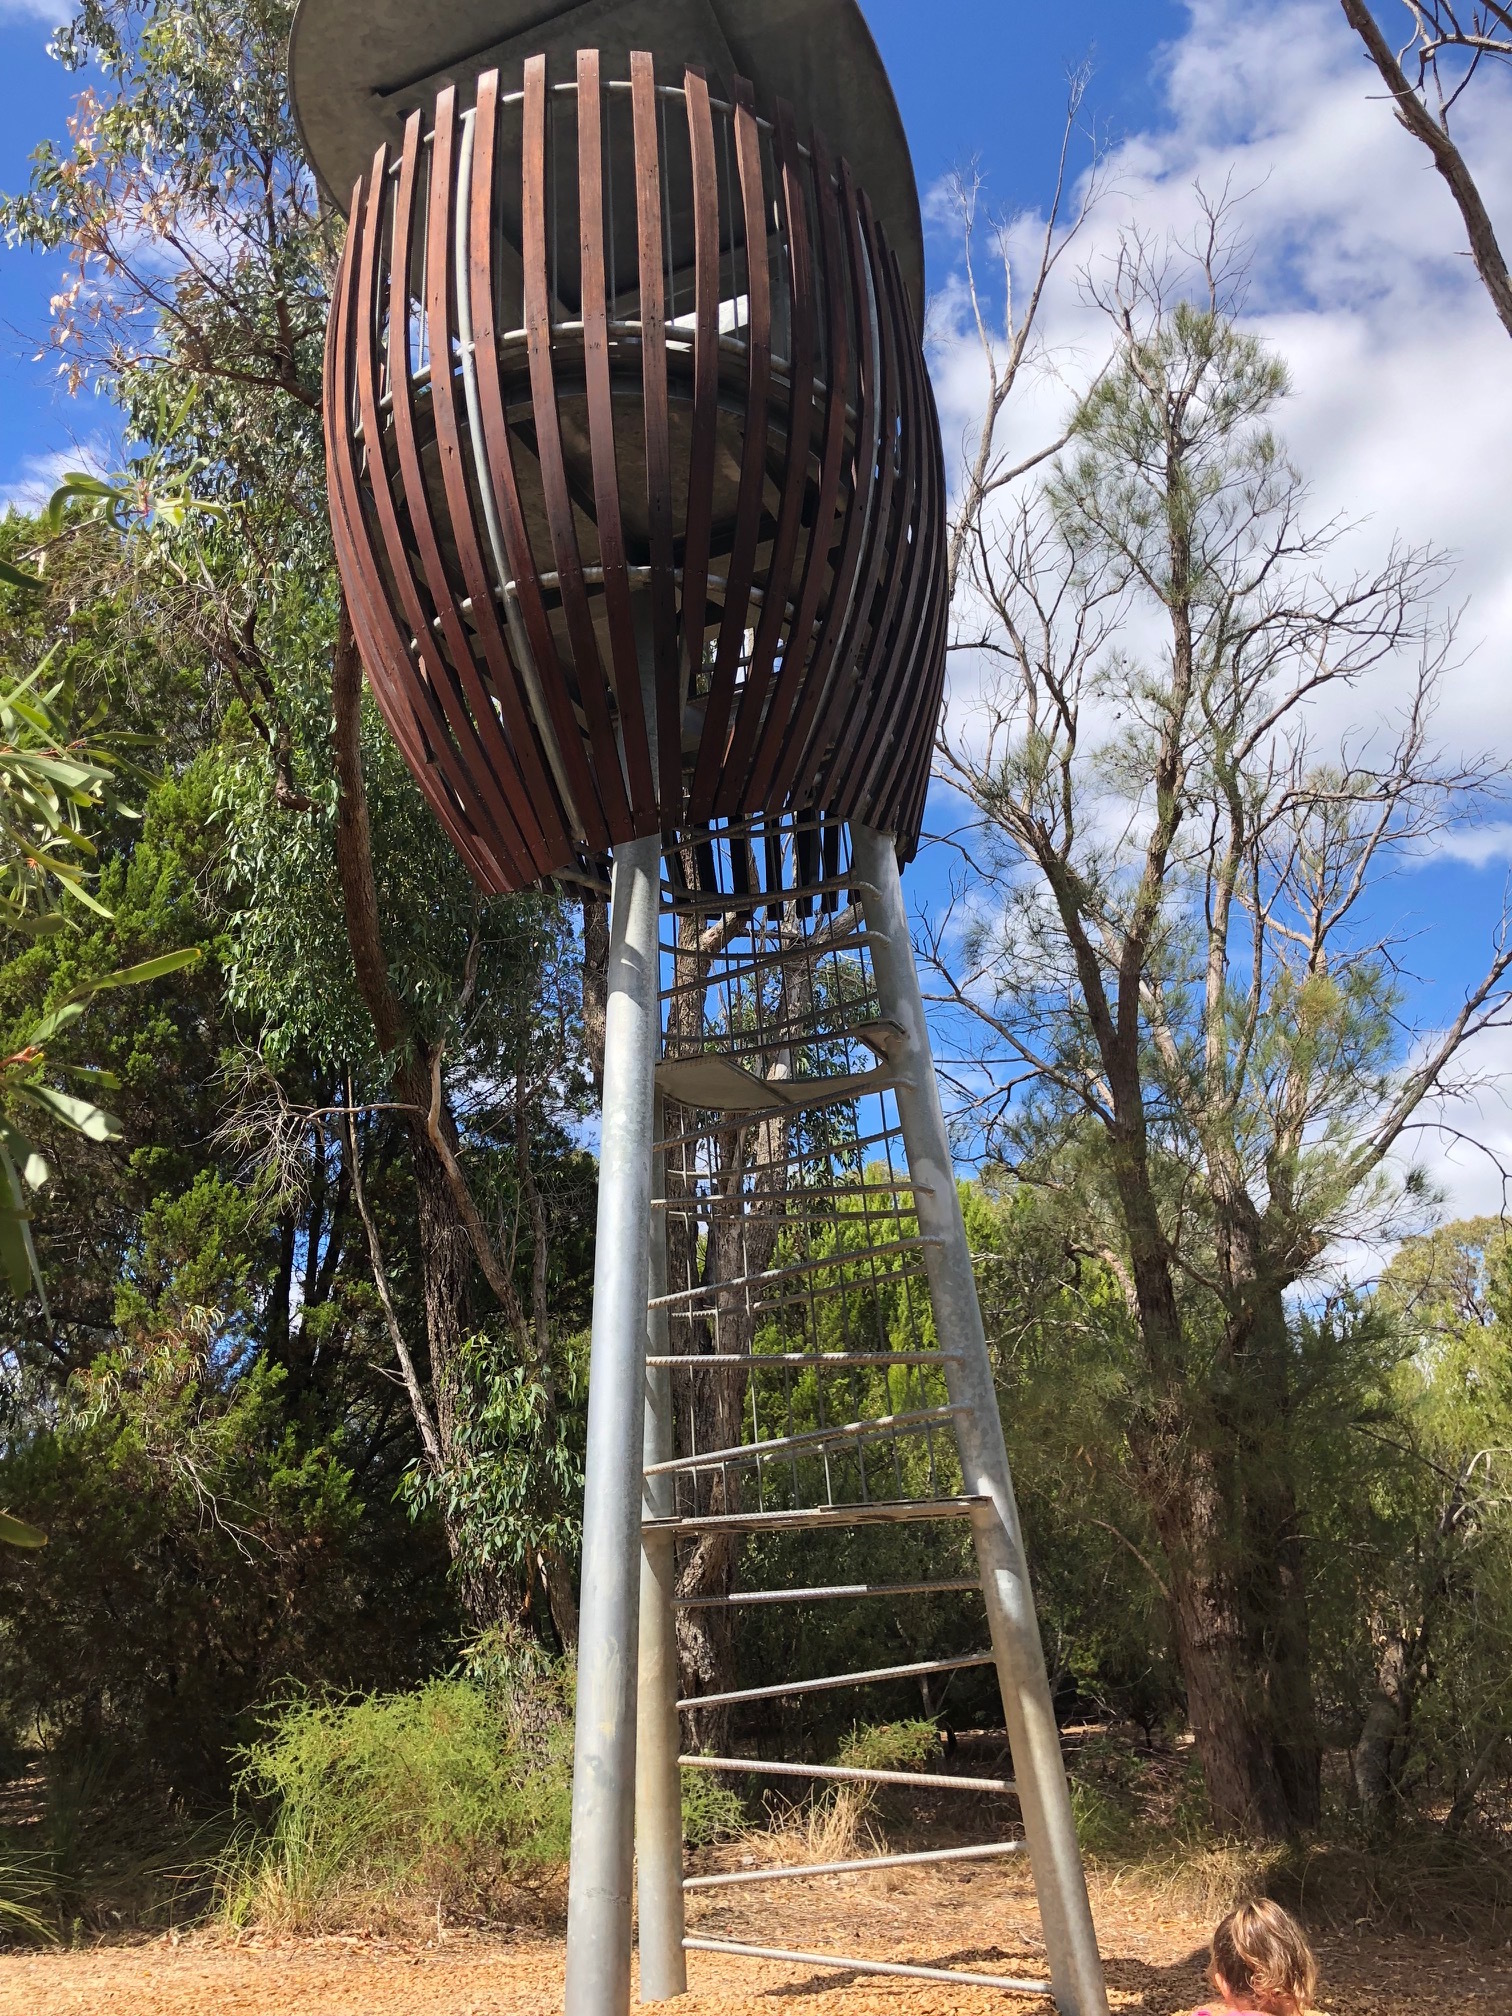 naturescape kings park tinto rio nature perth revamp completion stage climb structure another